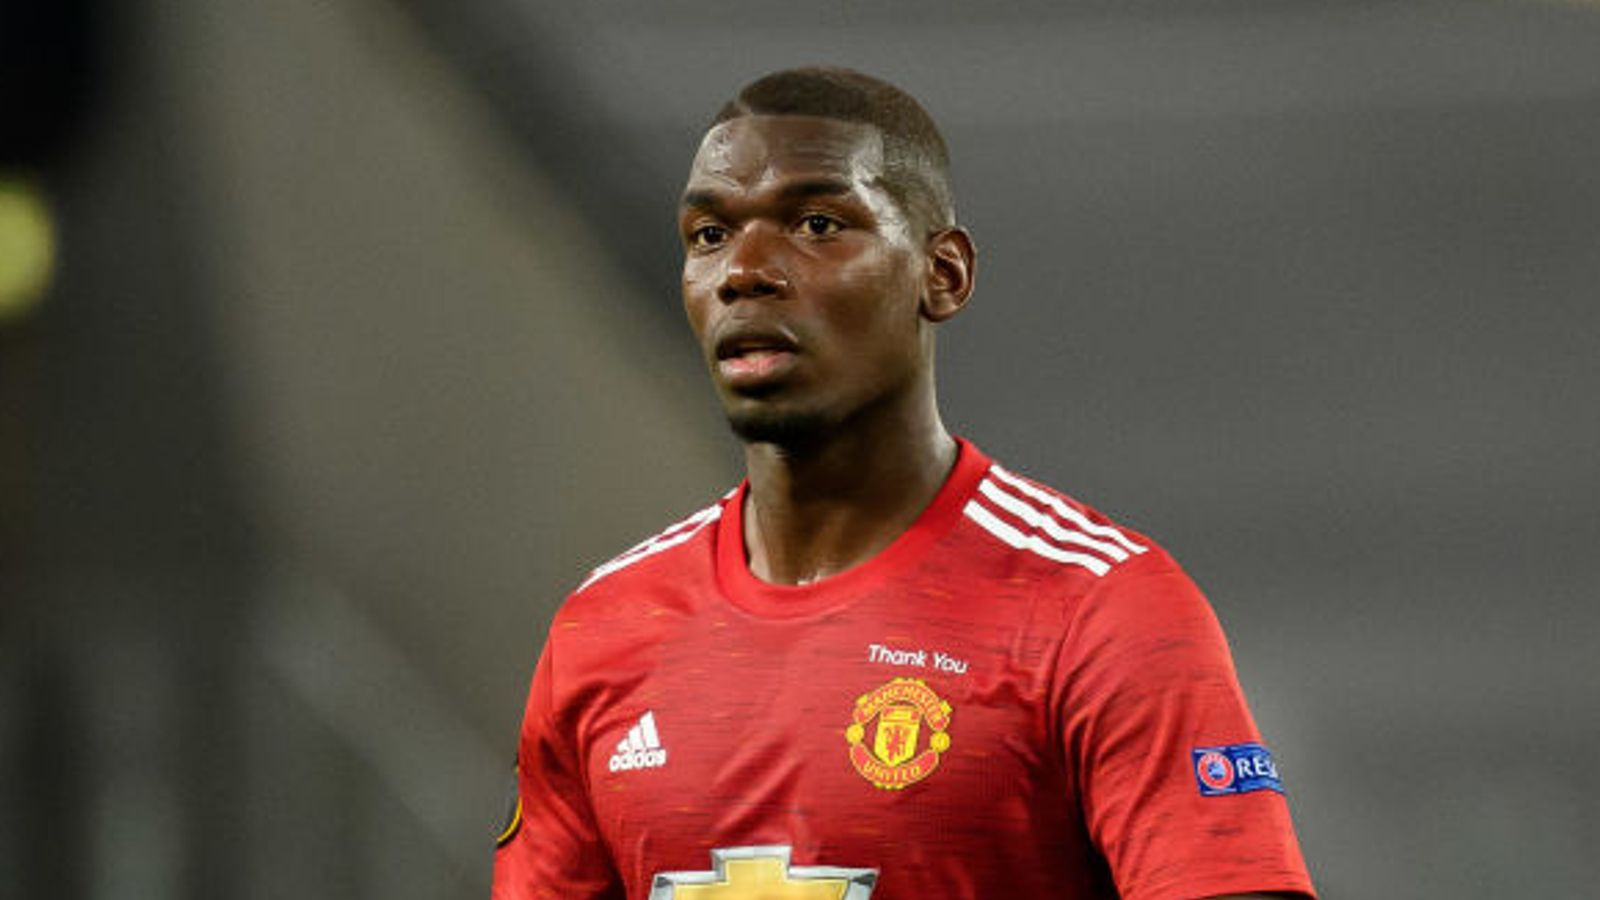 Five of the Highest Profile Players Ostracized by Mourinho - Newslibre